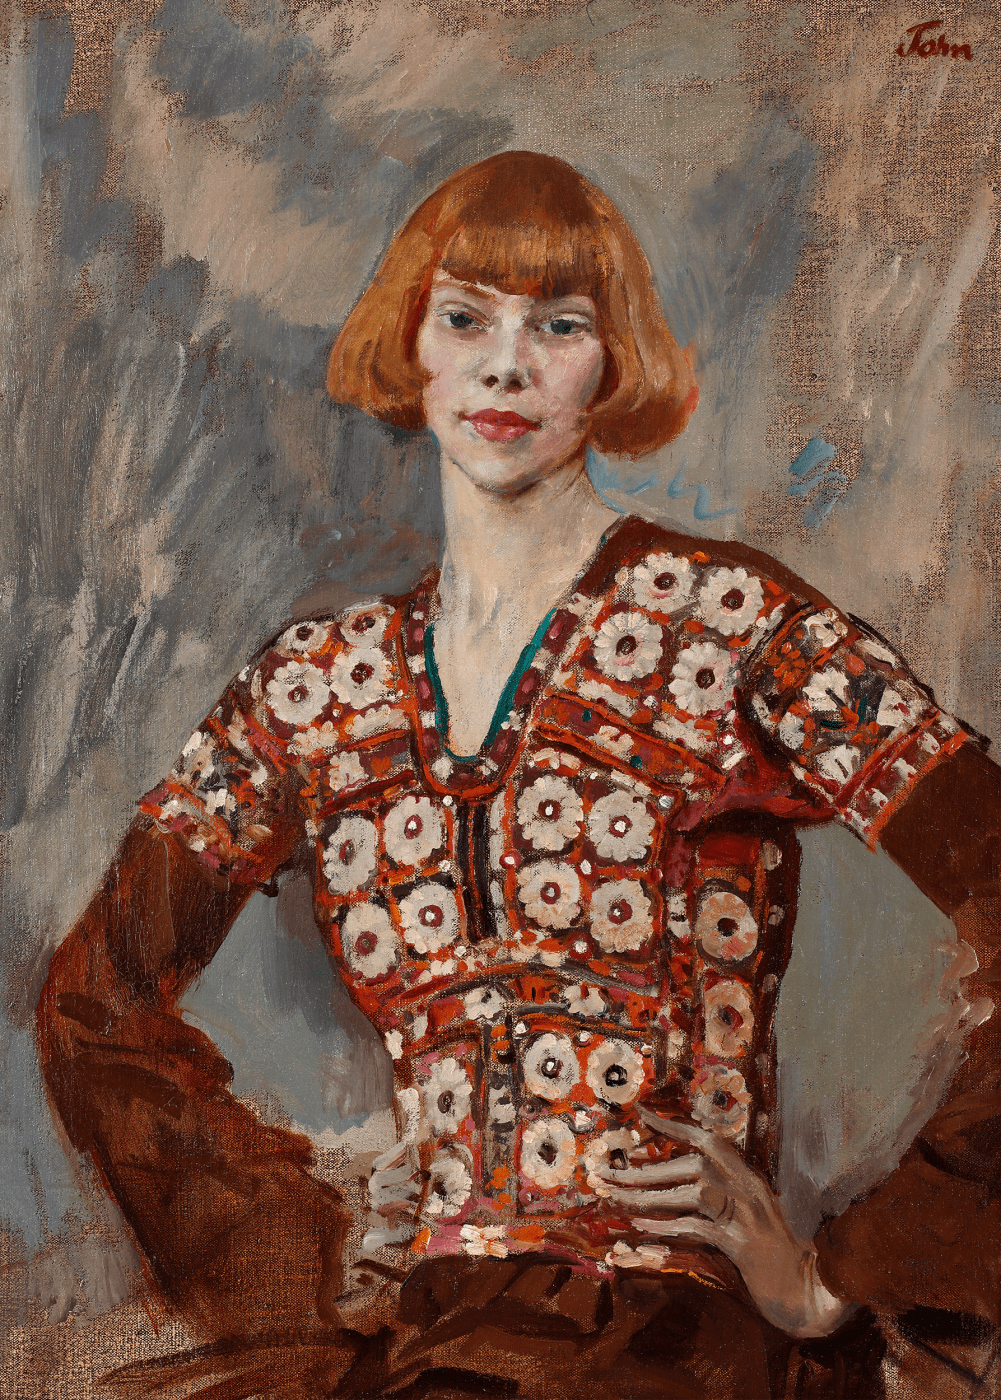 a portrait of poet Iris Tree in a patterned red and white crochet top, against a blue and grey background.